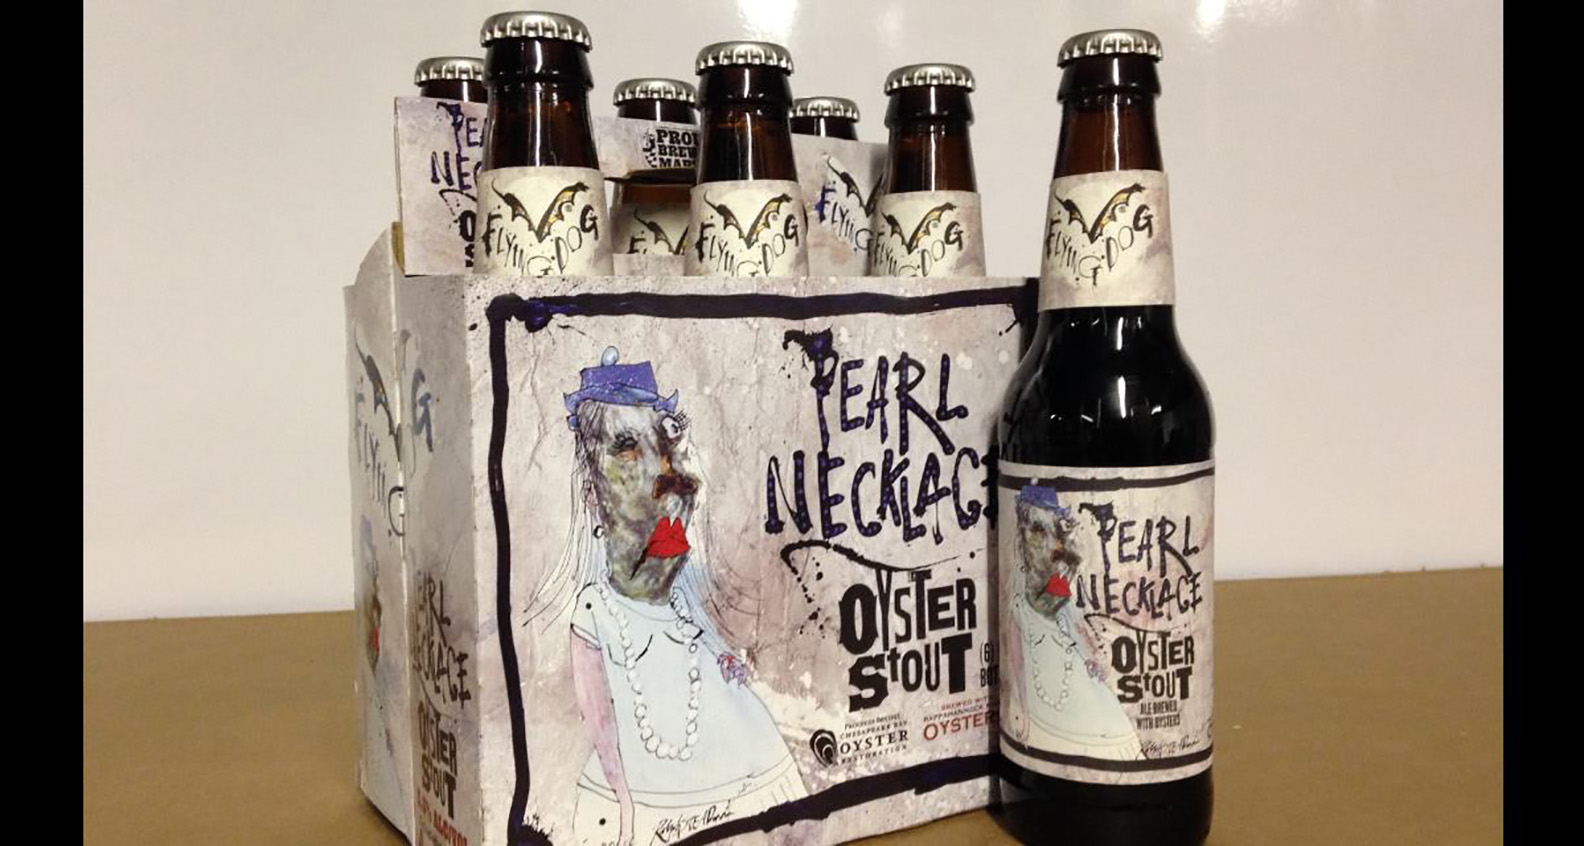 Pearl Necklace Chesapeake Stout